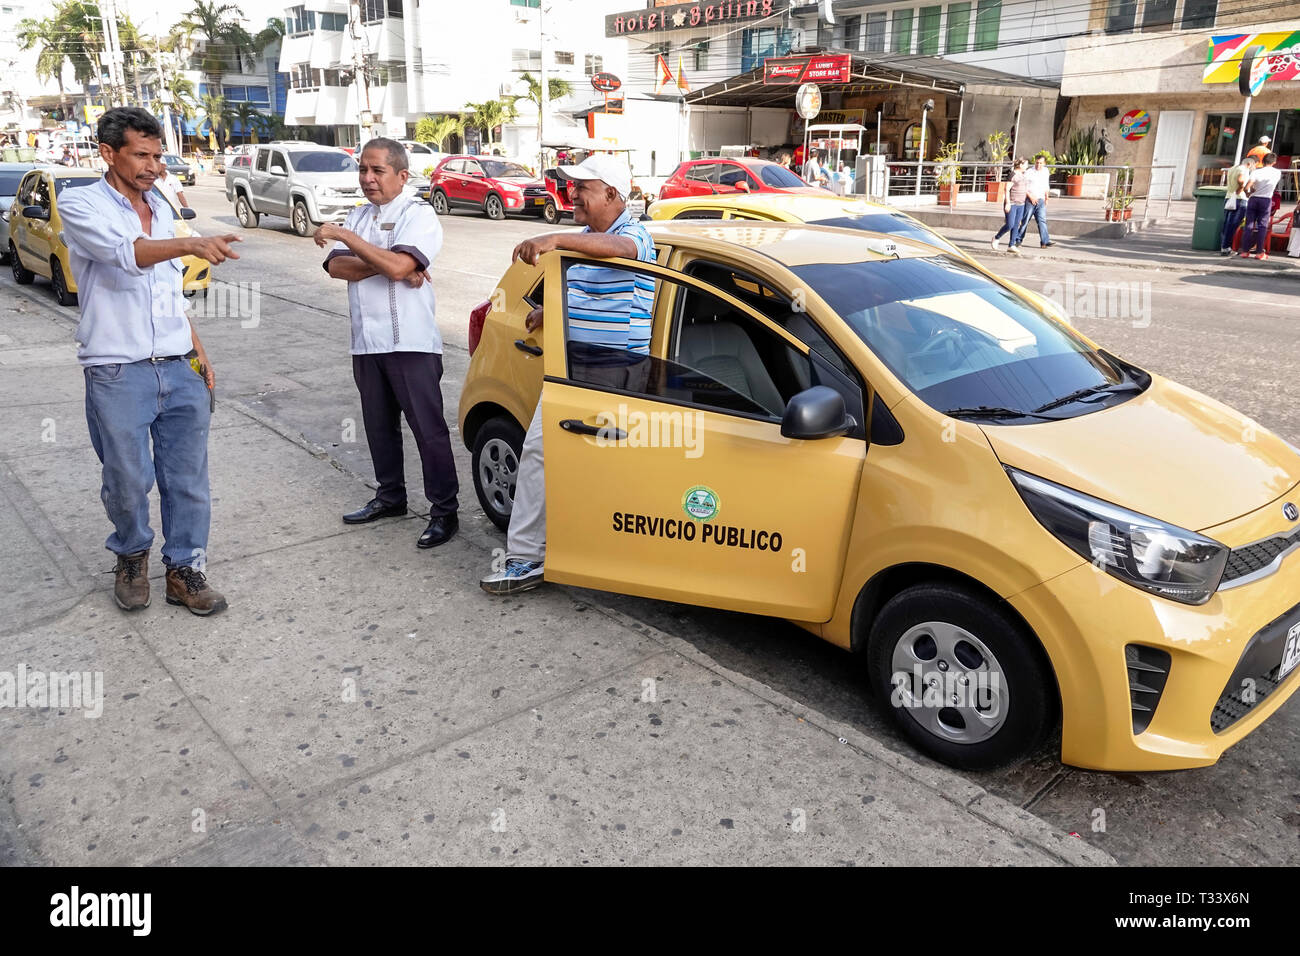 Cartagena Colombia Bocagrande taxi taxis cab cabs driver drivers talking Hispanic resident residents man friends - Stock Image